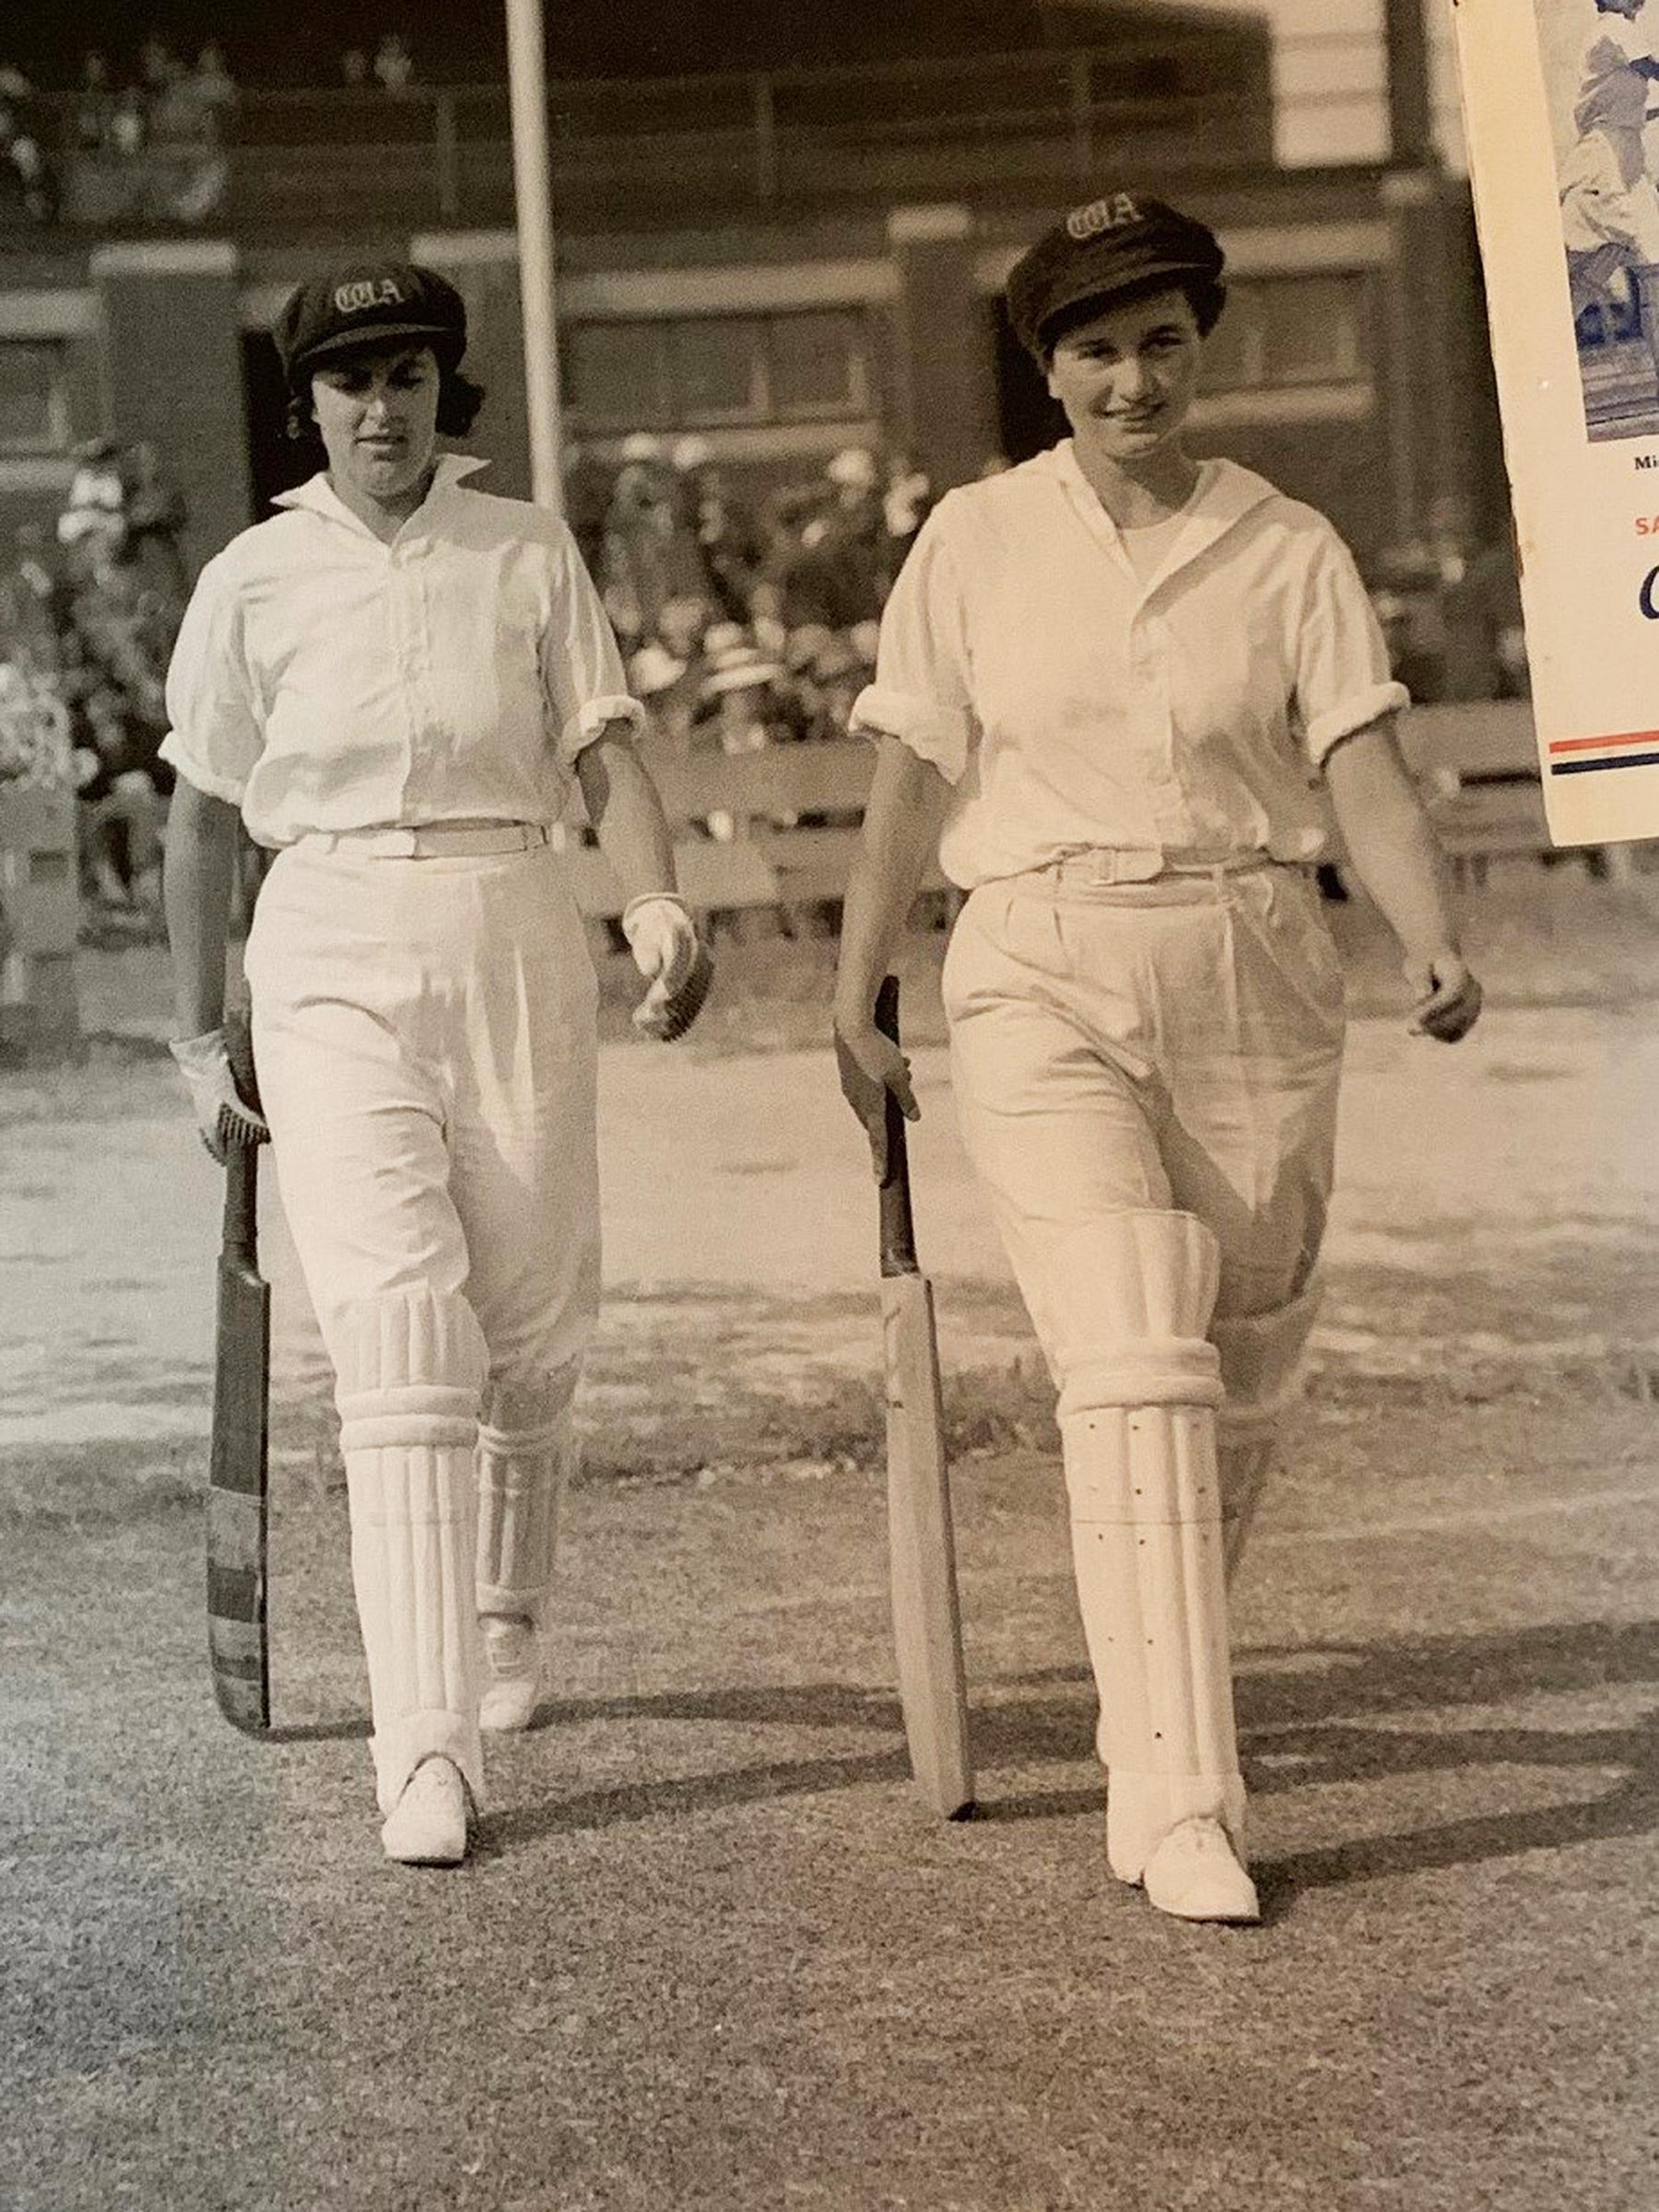 Edwards' aunts walk out to bat // Supplied